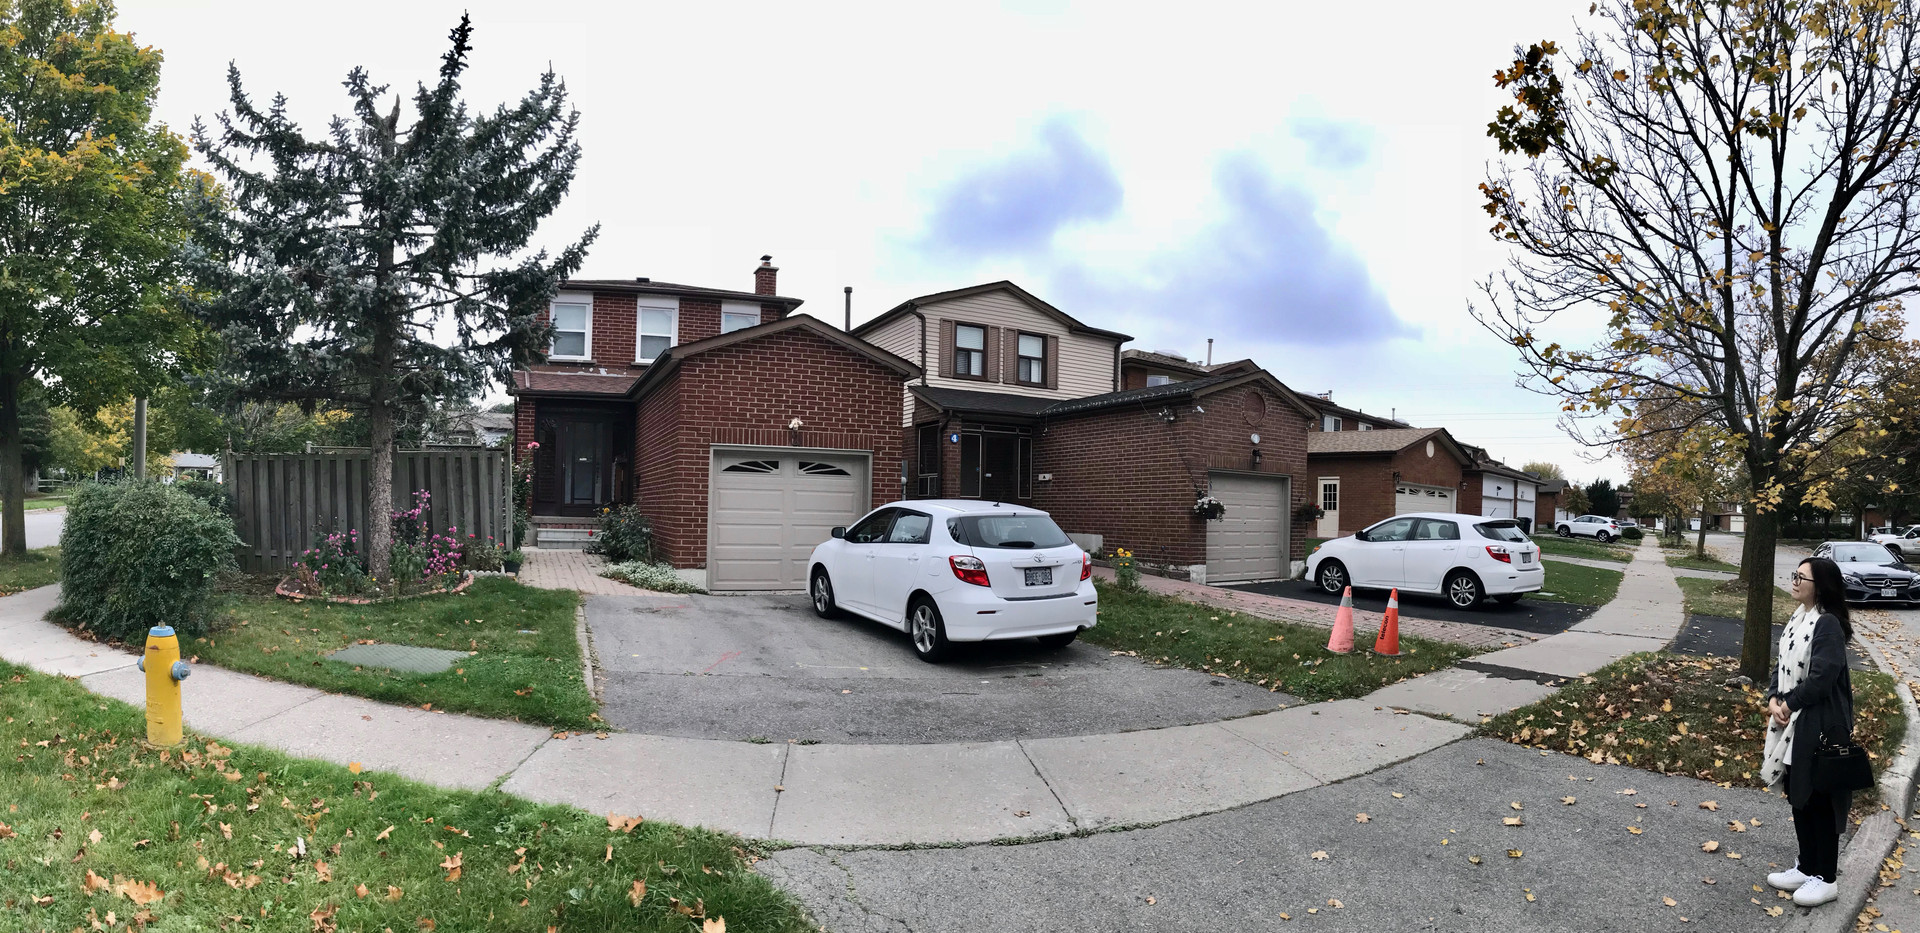 懷舊系列: 2nd house in Canada Oct 2017